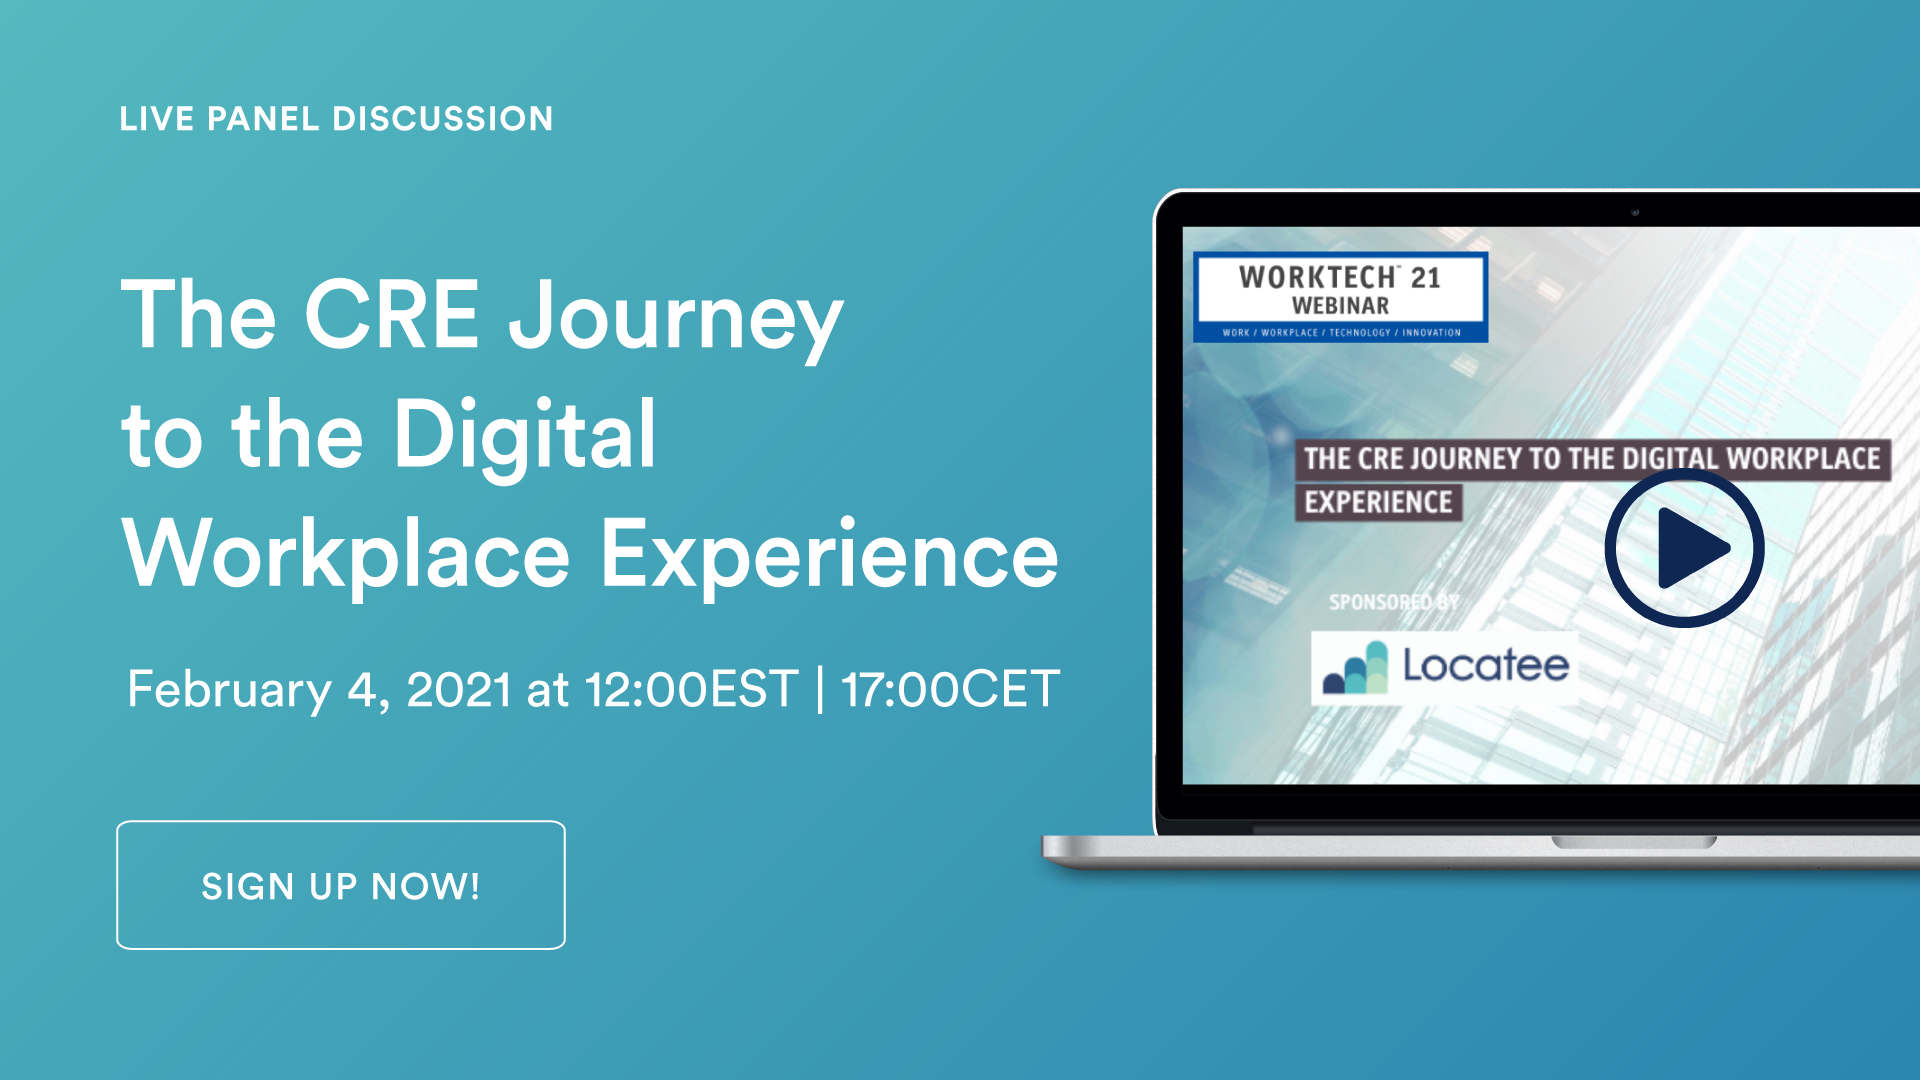 Upcoming Webinar: The CRE Journey to the Digital Workplace Experience